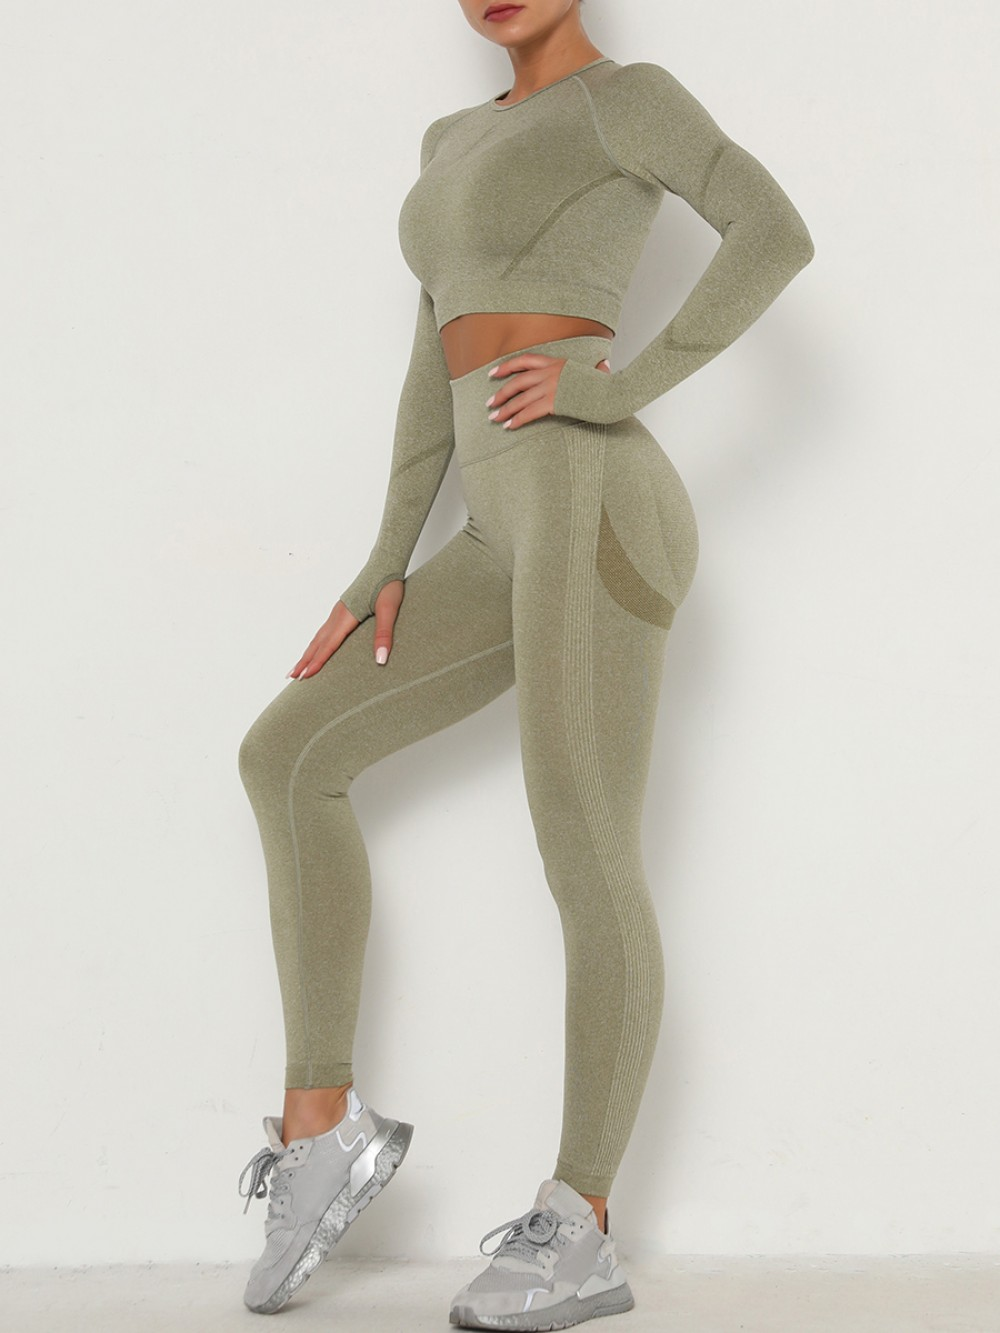 Army Green Knit Crop Top Wide Waistband Leggings For Running